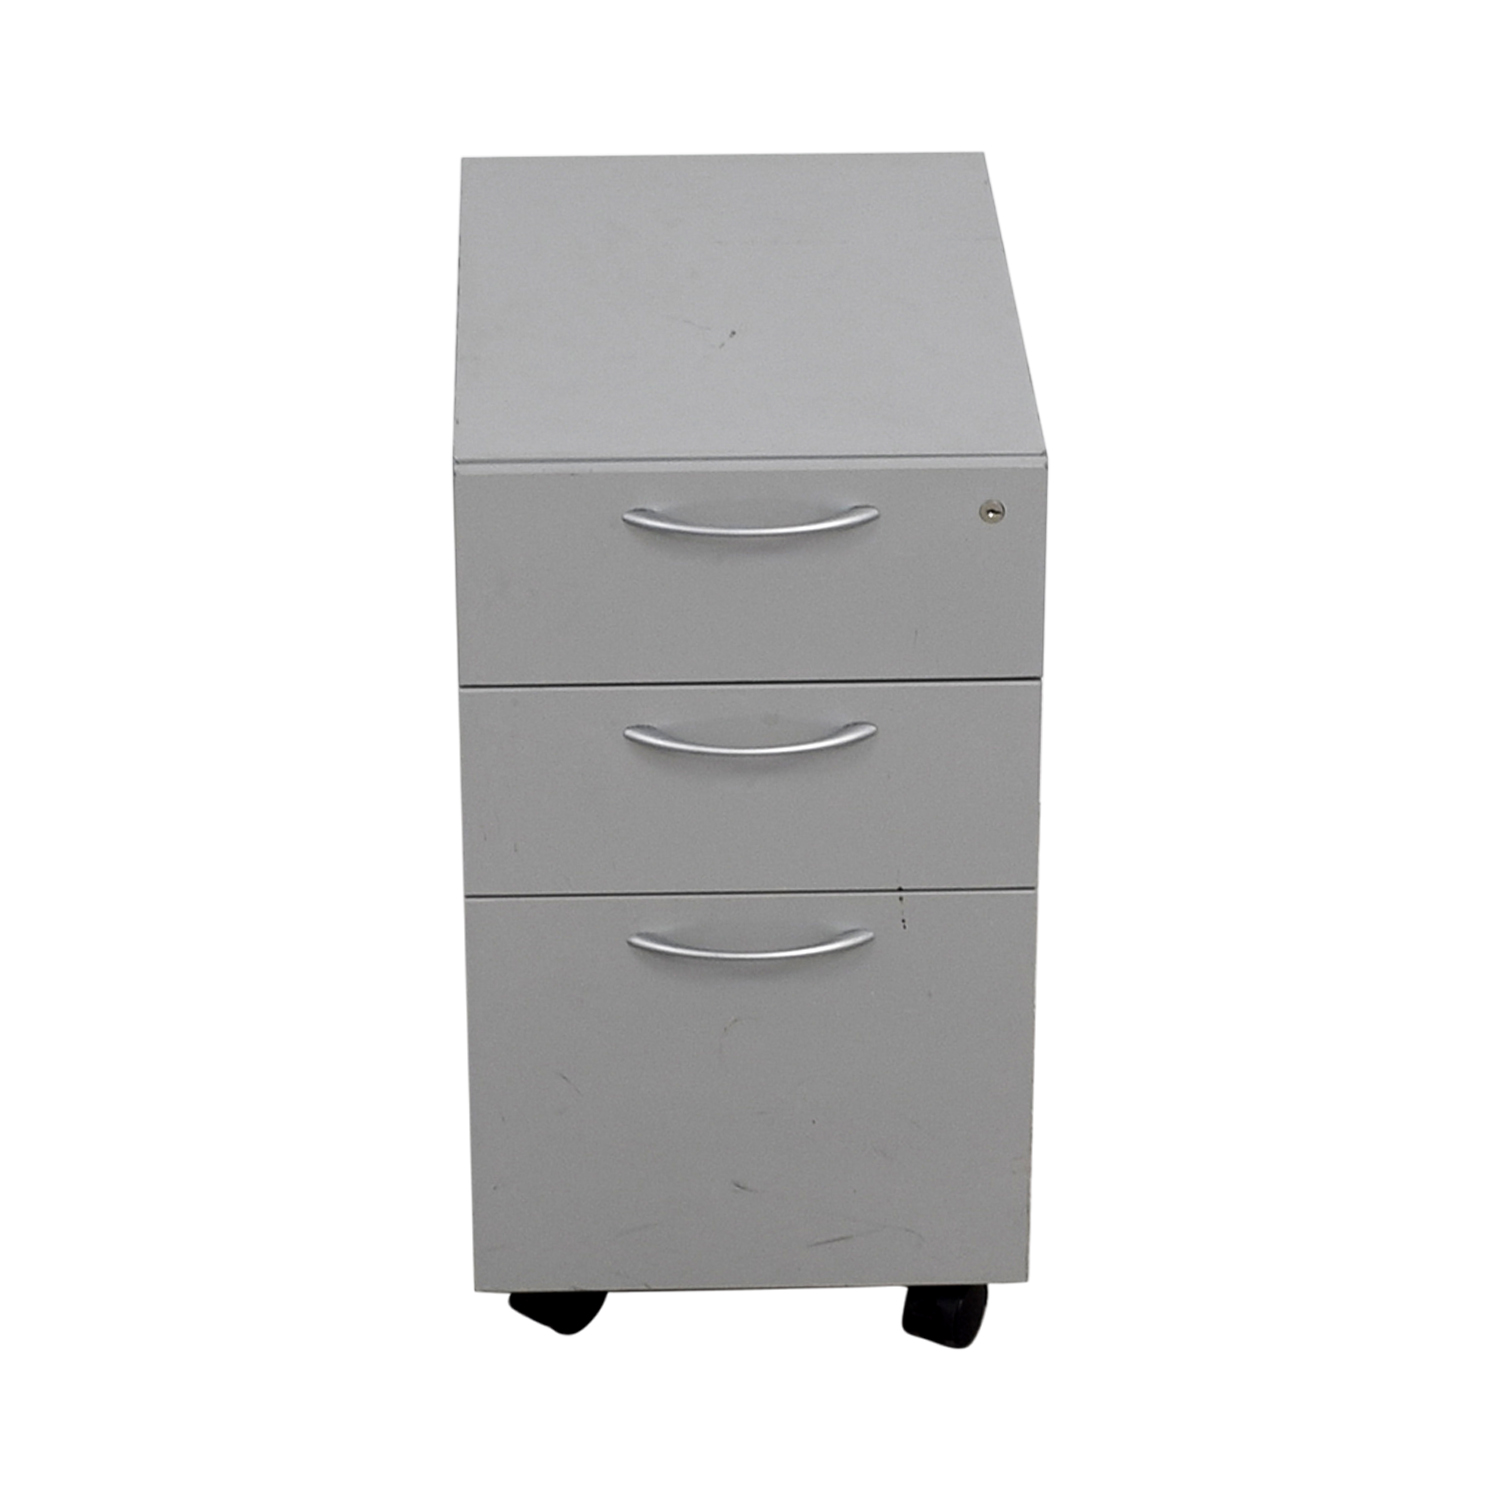 shop Allsteel Allsteel Light Grey Two-Drawer Cabinet on Casters online